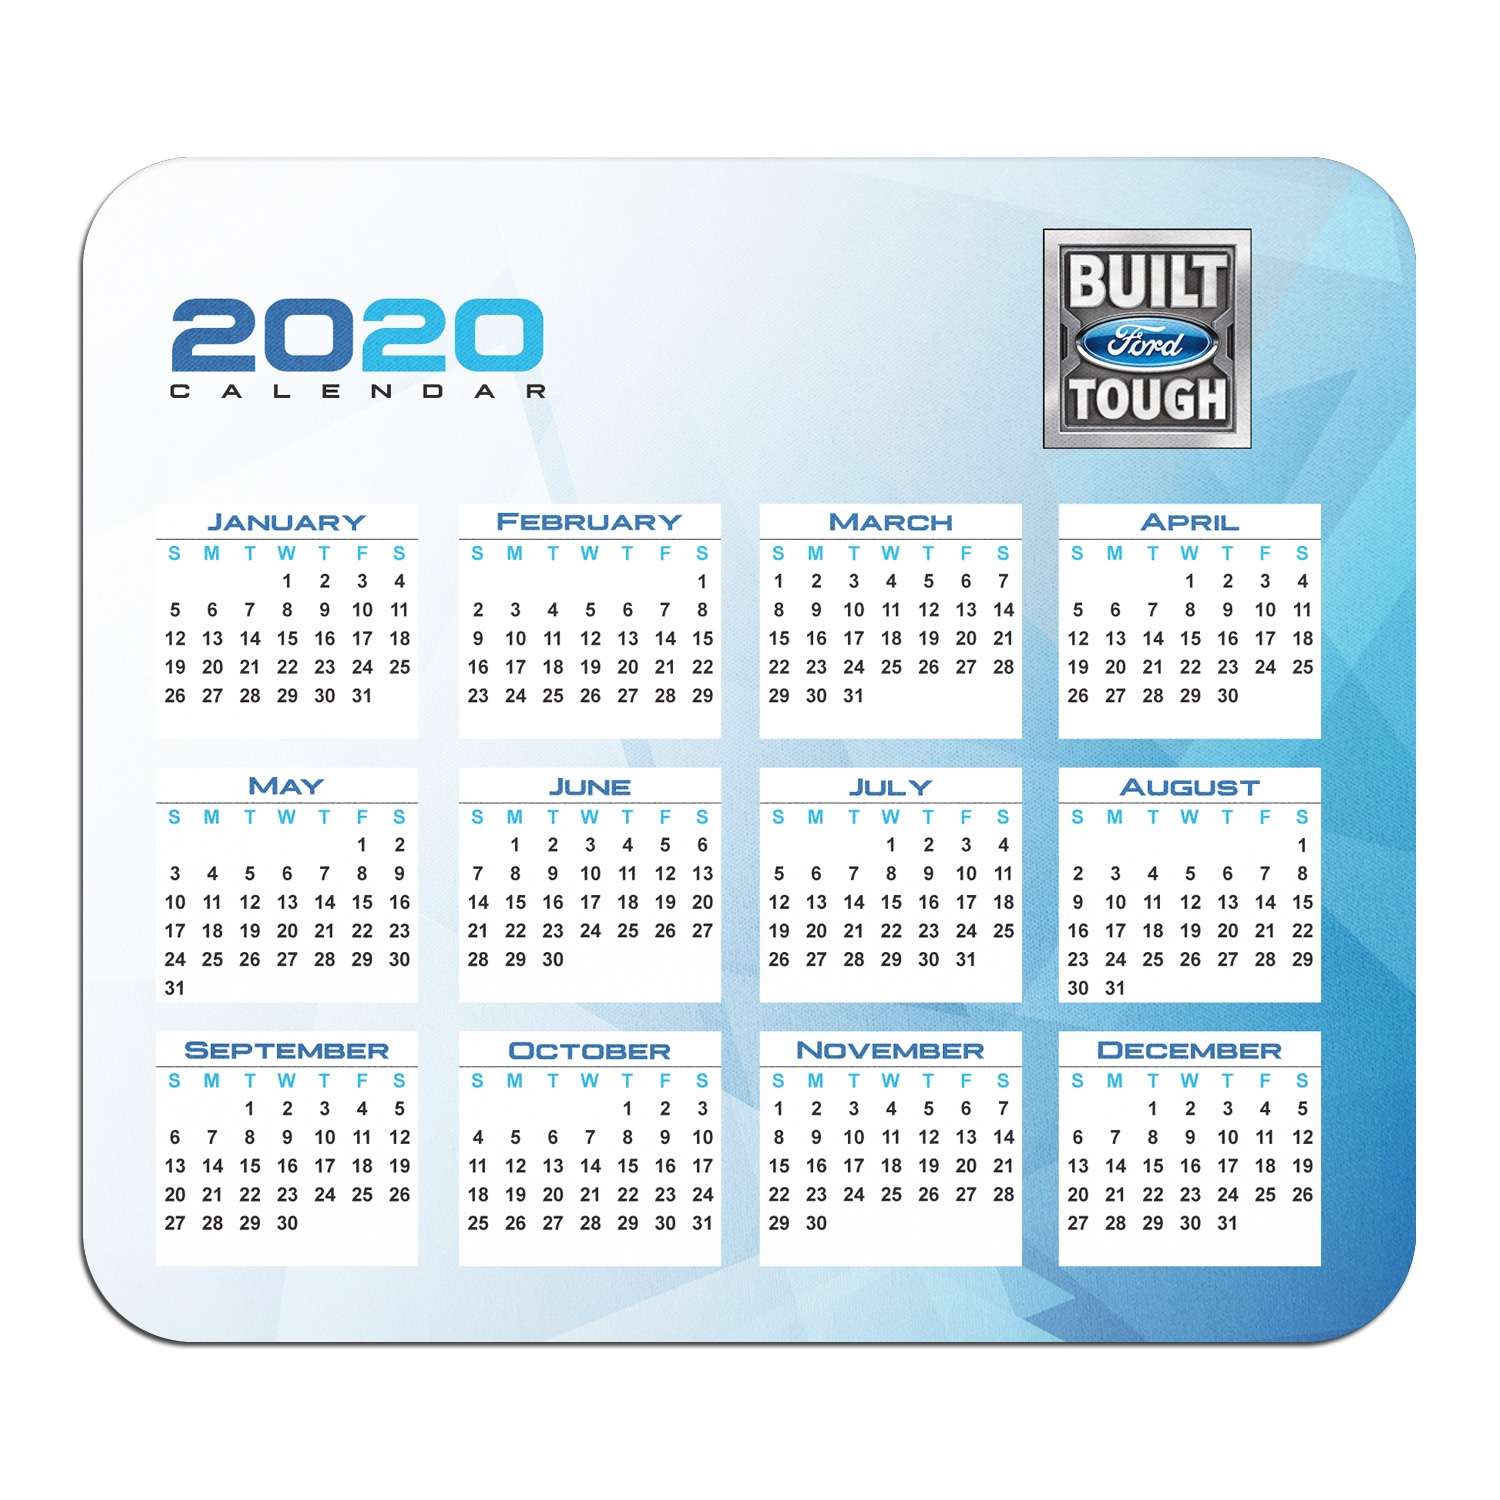 Ford Built-Ford-Tough Year Calendar Graphic PC Mouse Pad